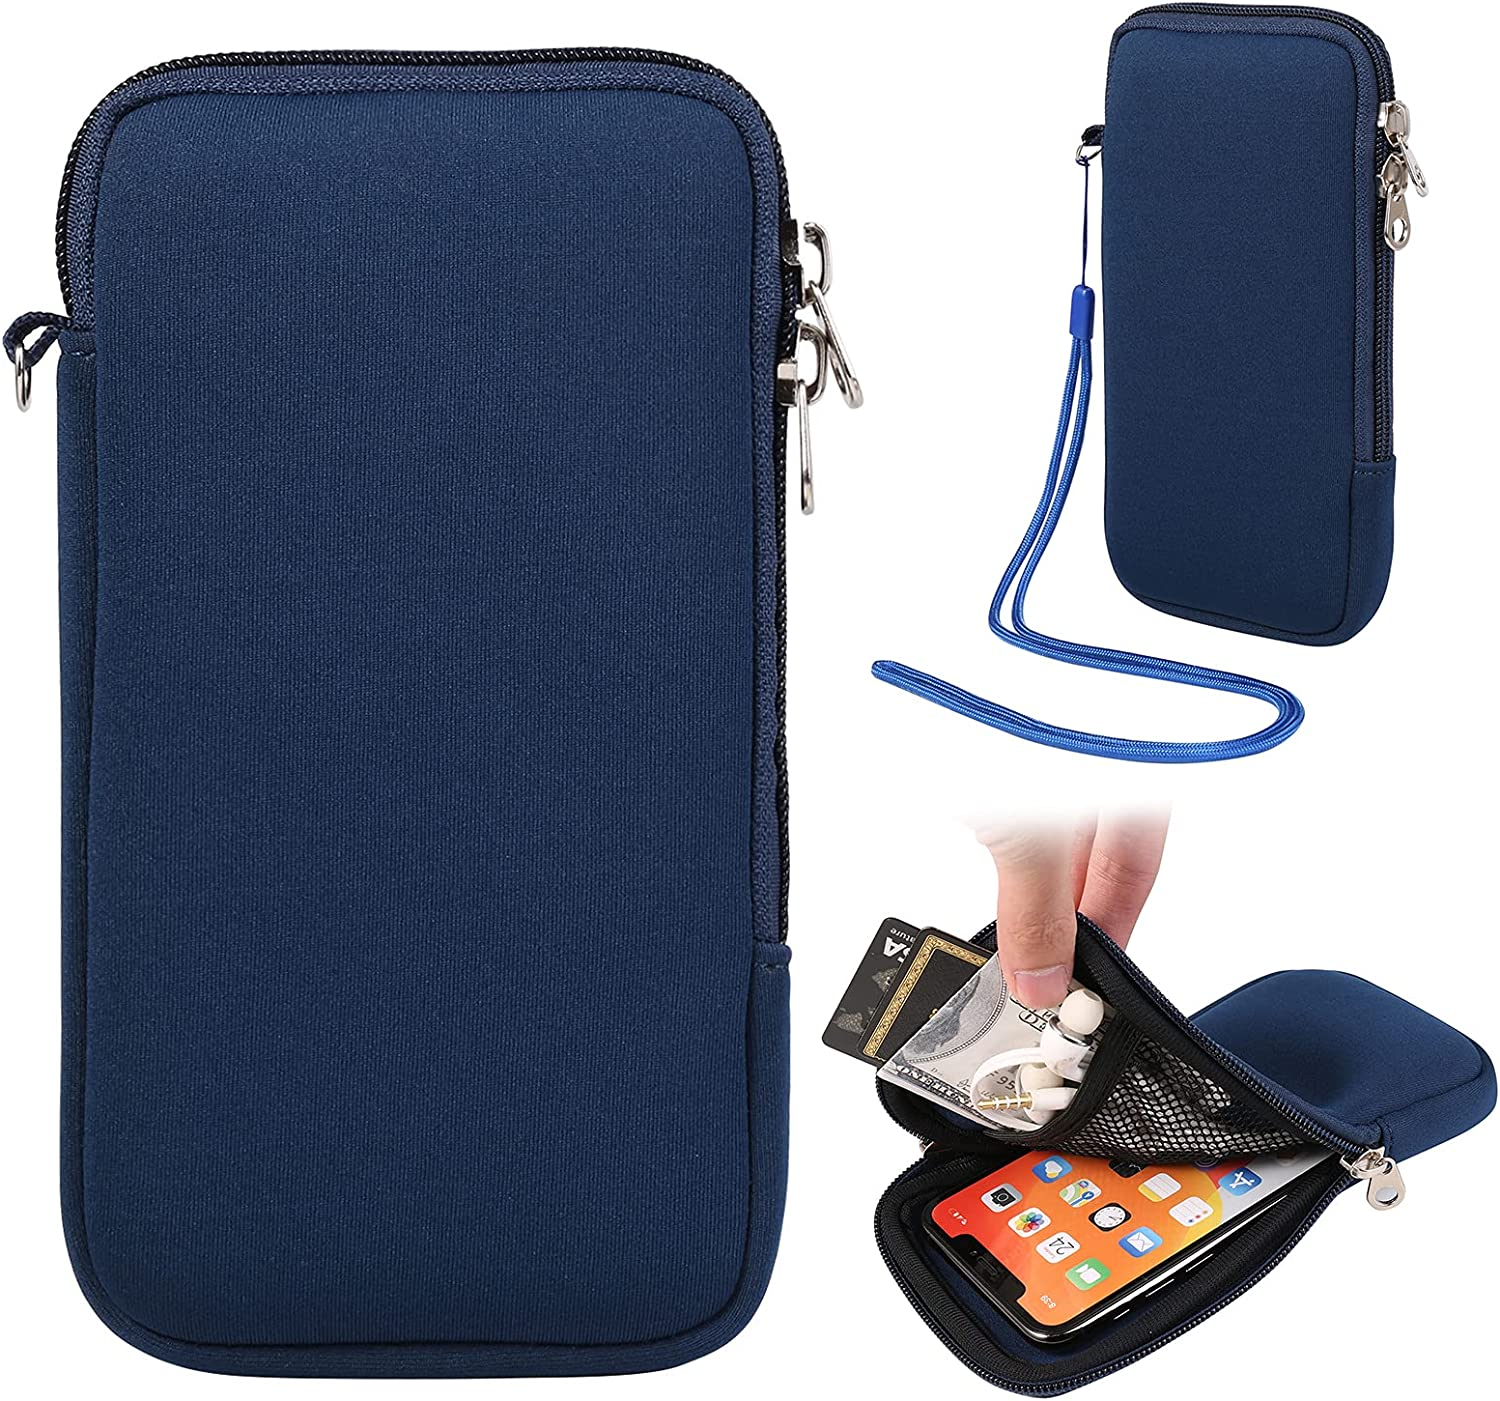 Zipper Phone Sleeve Pouch w/Neck Lanyard Compatible for Apple iPhone 12 Pro Max/Huawei Mate 40 Pro / P40 Pro/LG W41 Plus/Motorola G10 G30 / G Power Play/Xiaomi Mi 11 / Redmi Note 9T (Blue)